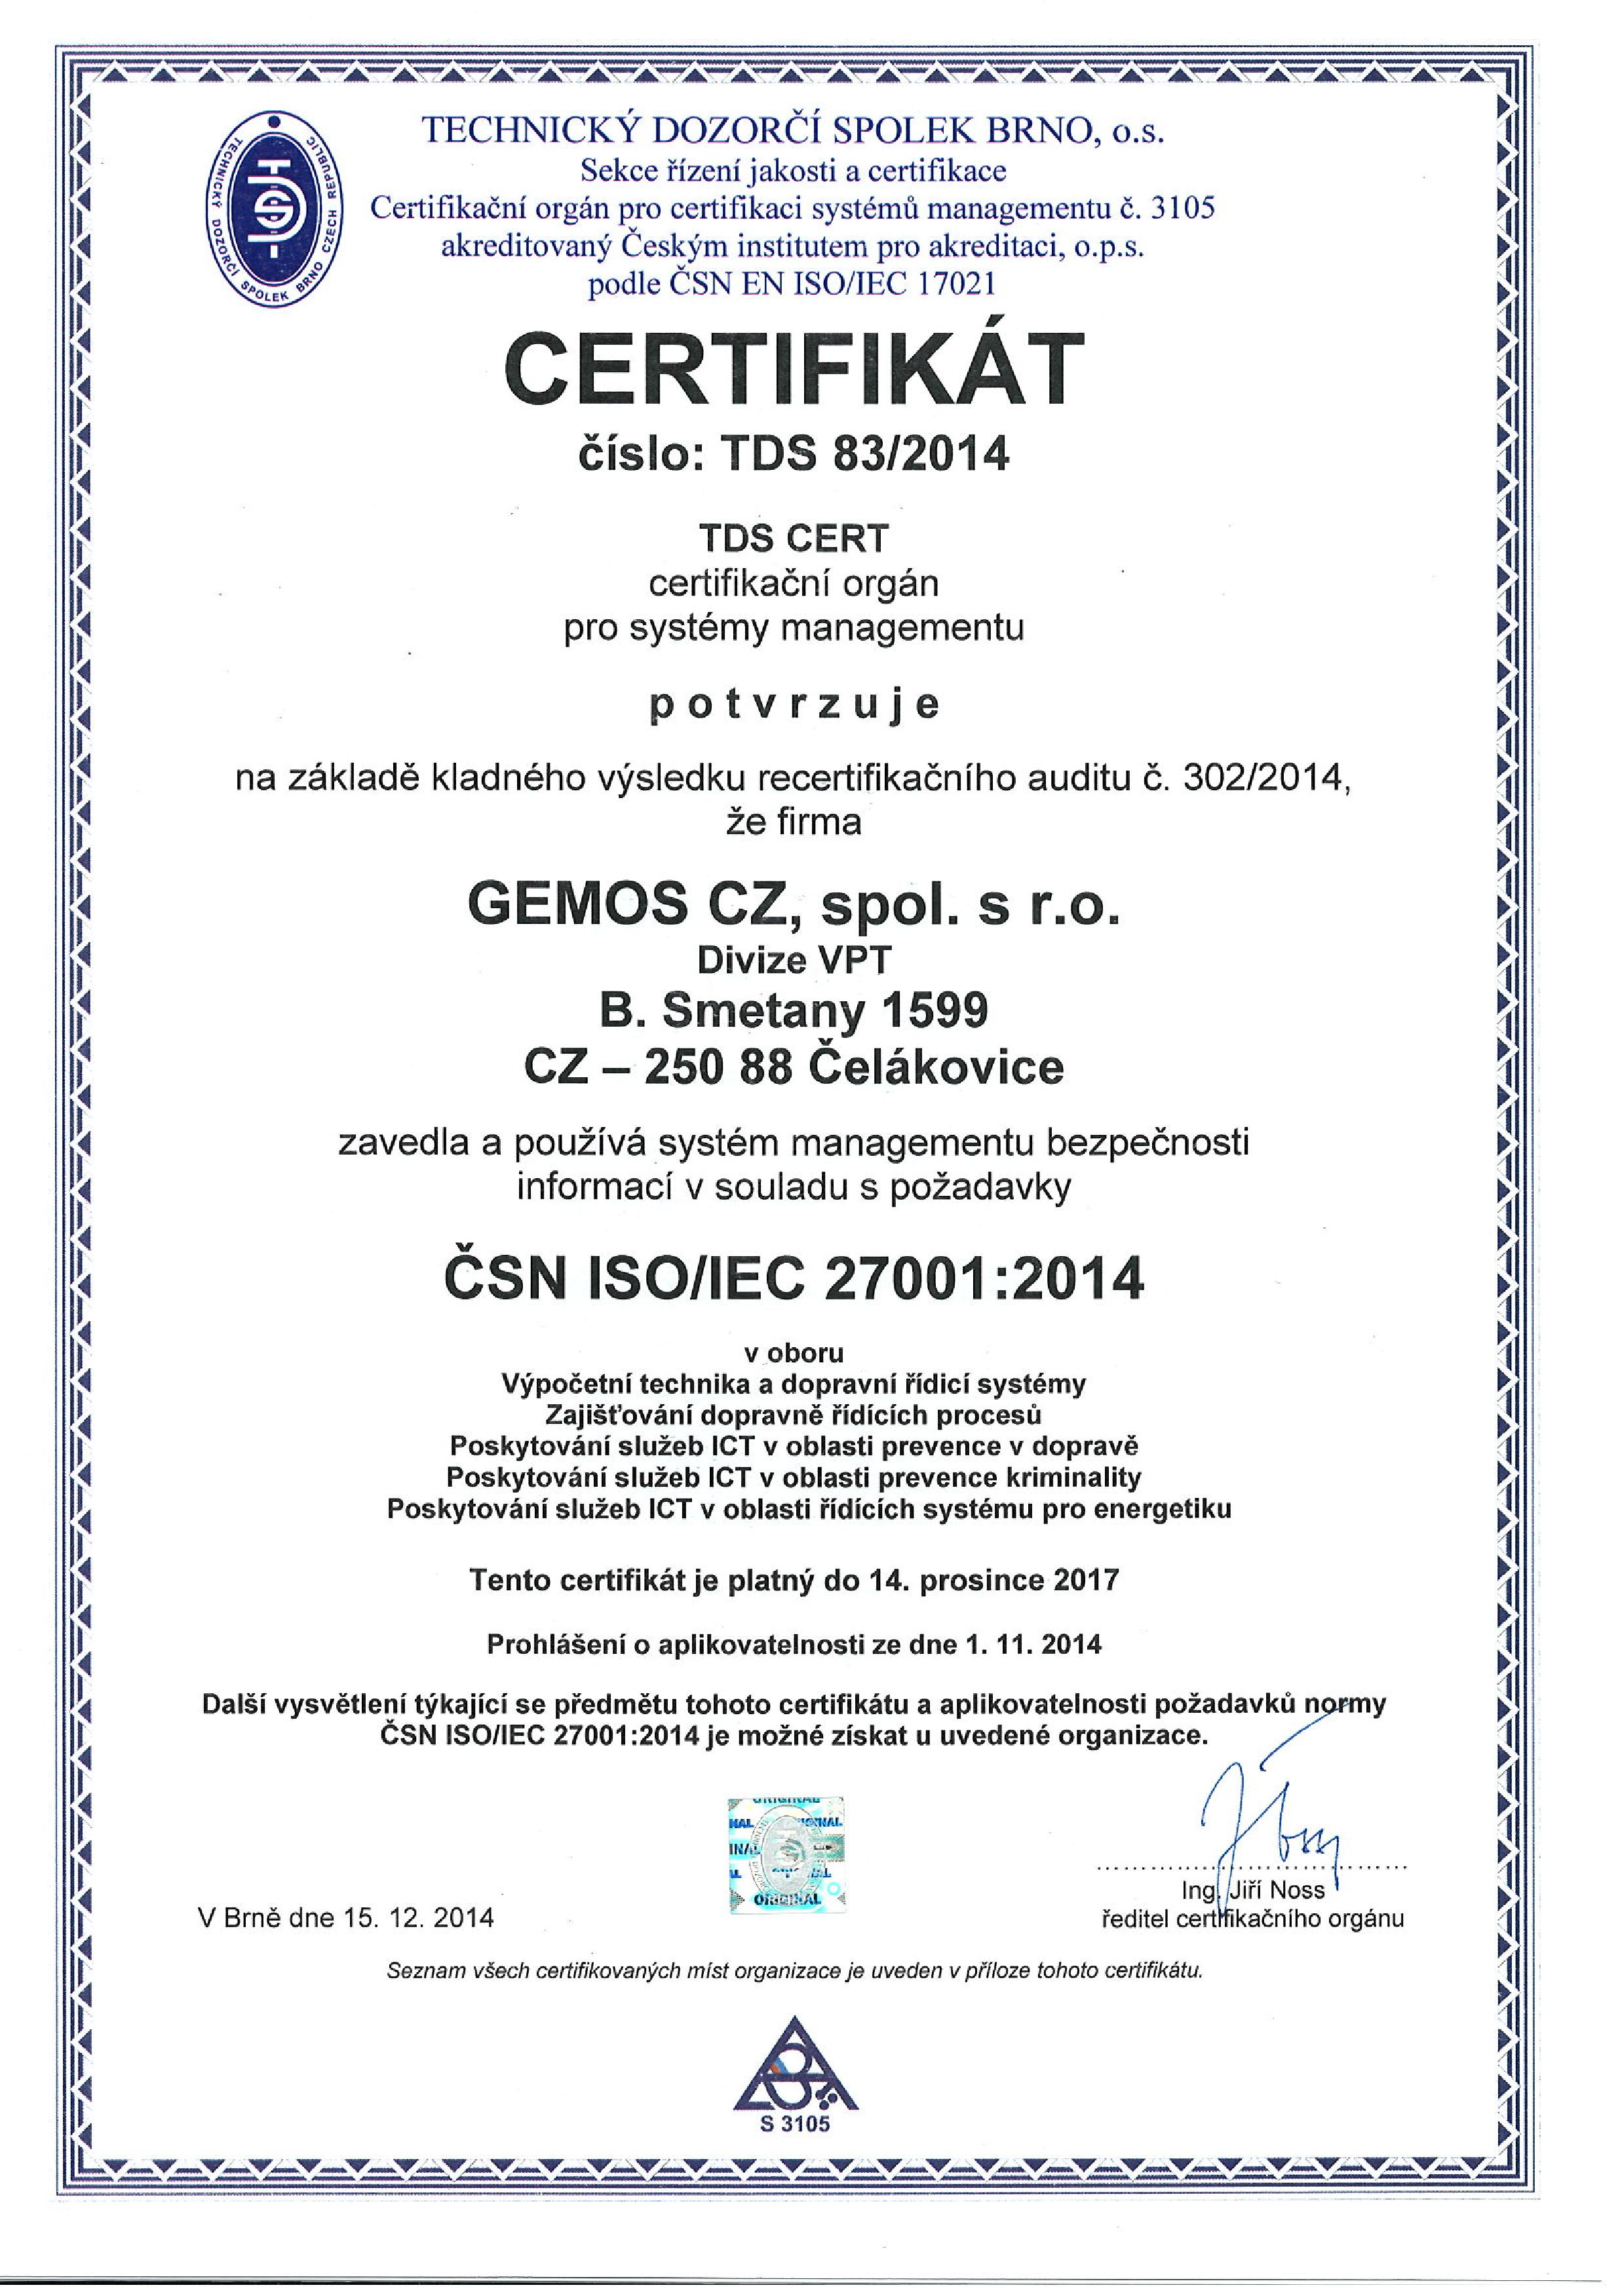 Certificate ČSN ISO/IEC 27001 granted to GEMOS CZ company